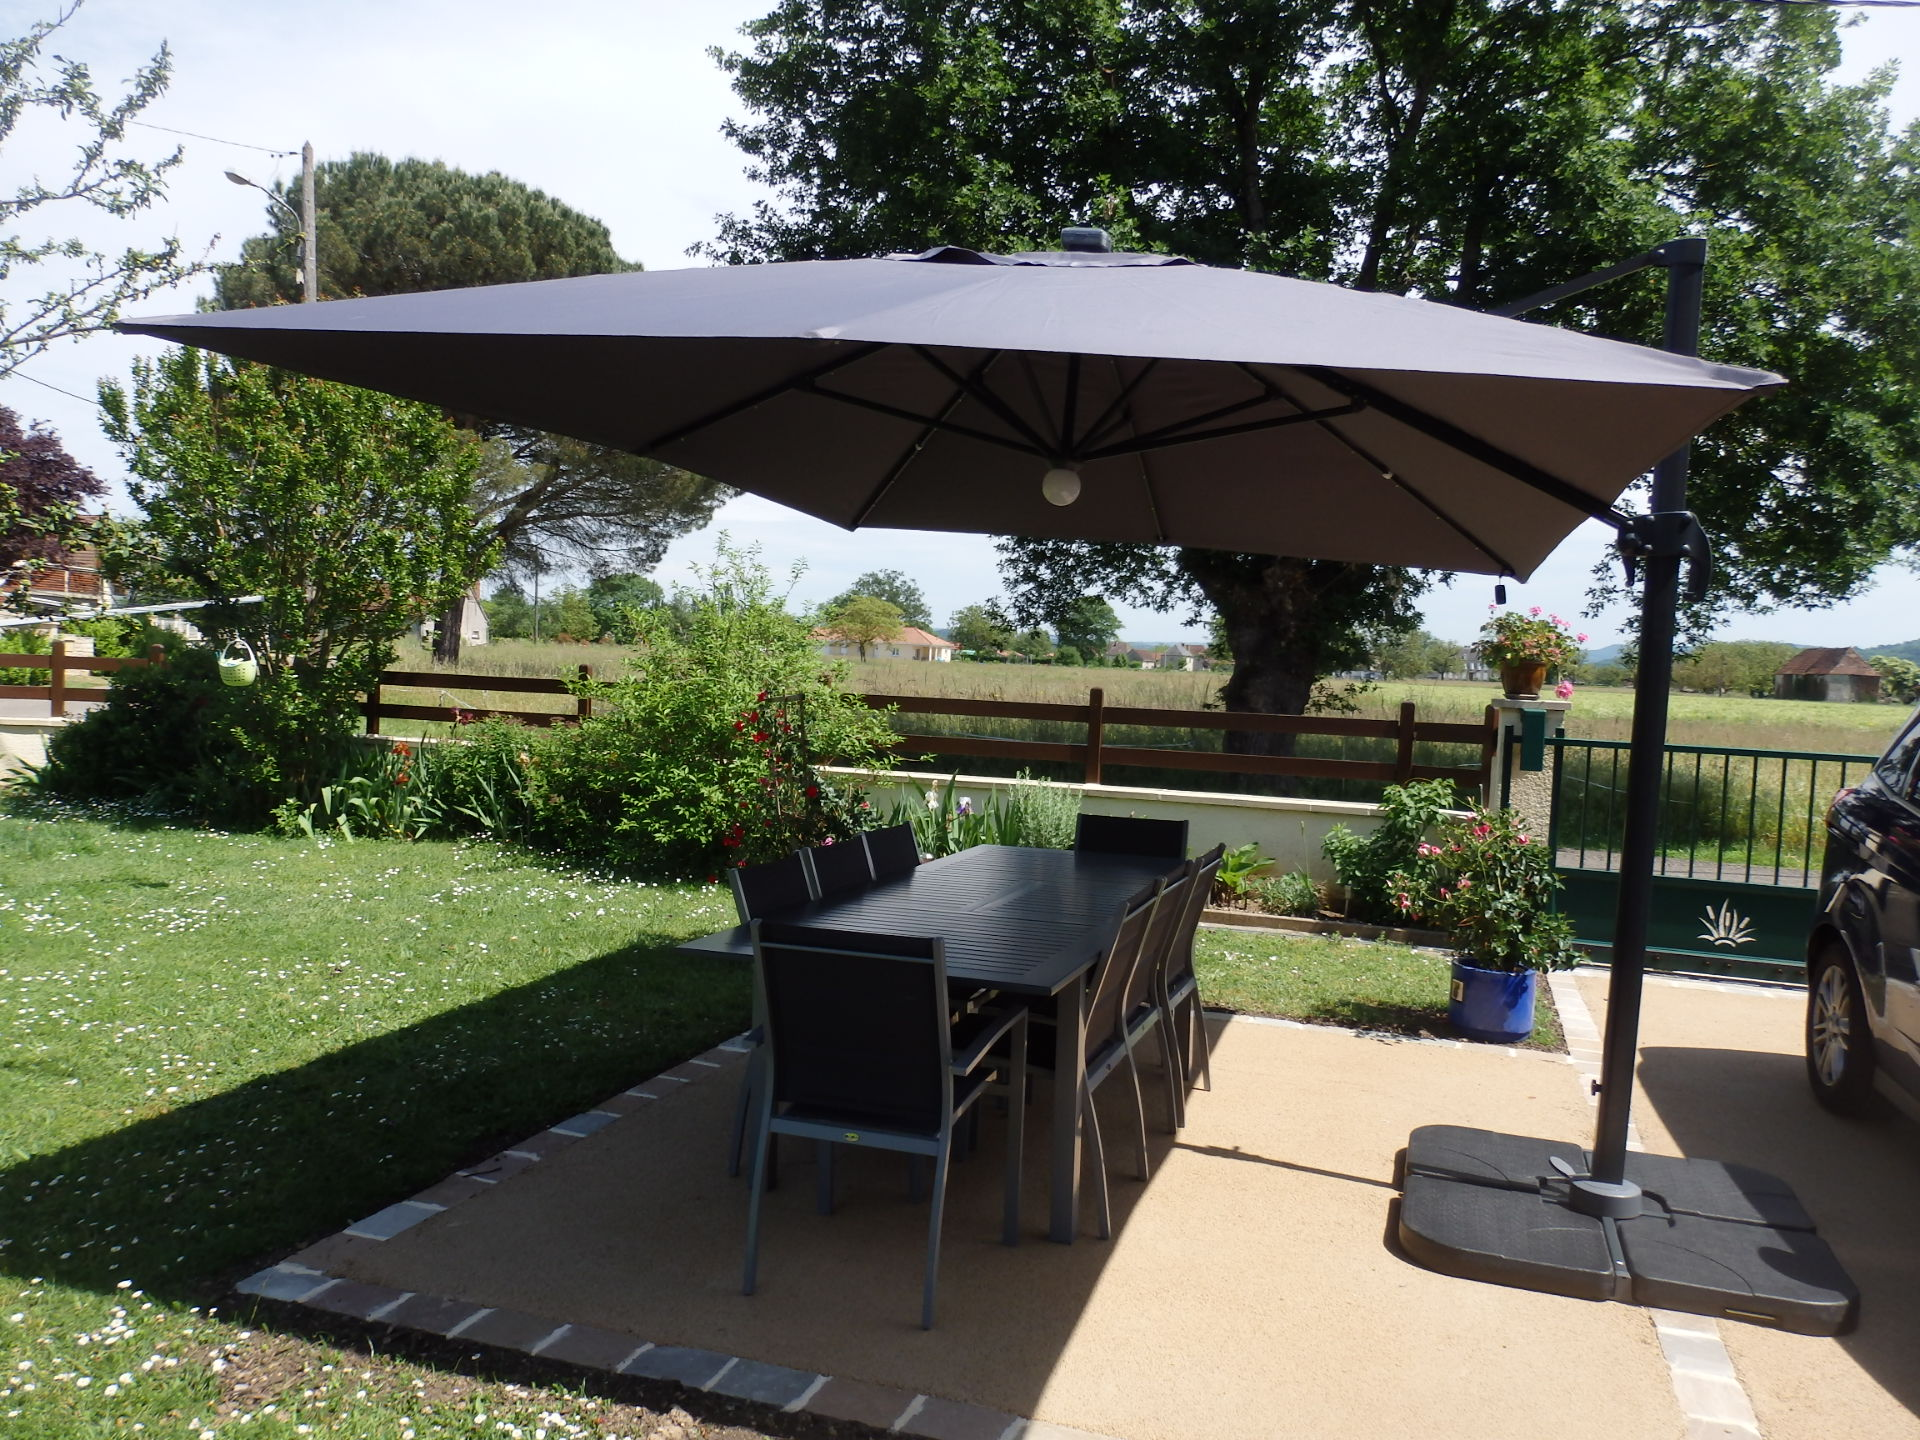 Parasol Rectangulaire Deporte Inclinable Maison Design Yukoff Com